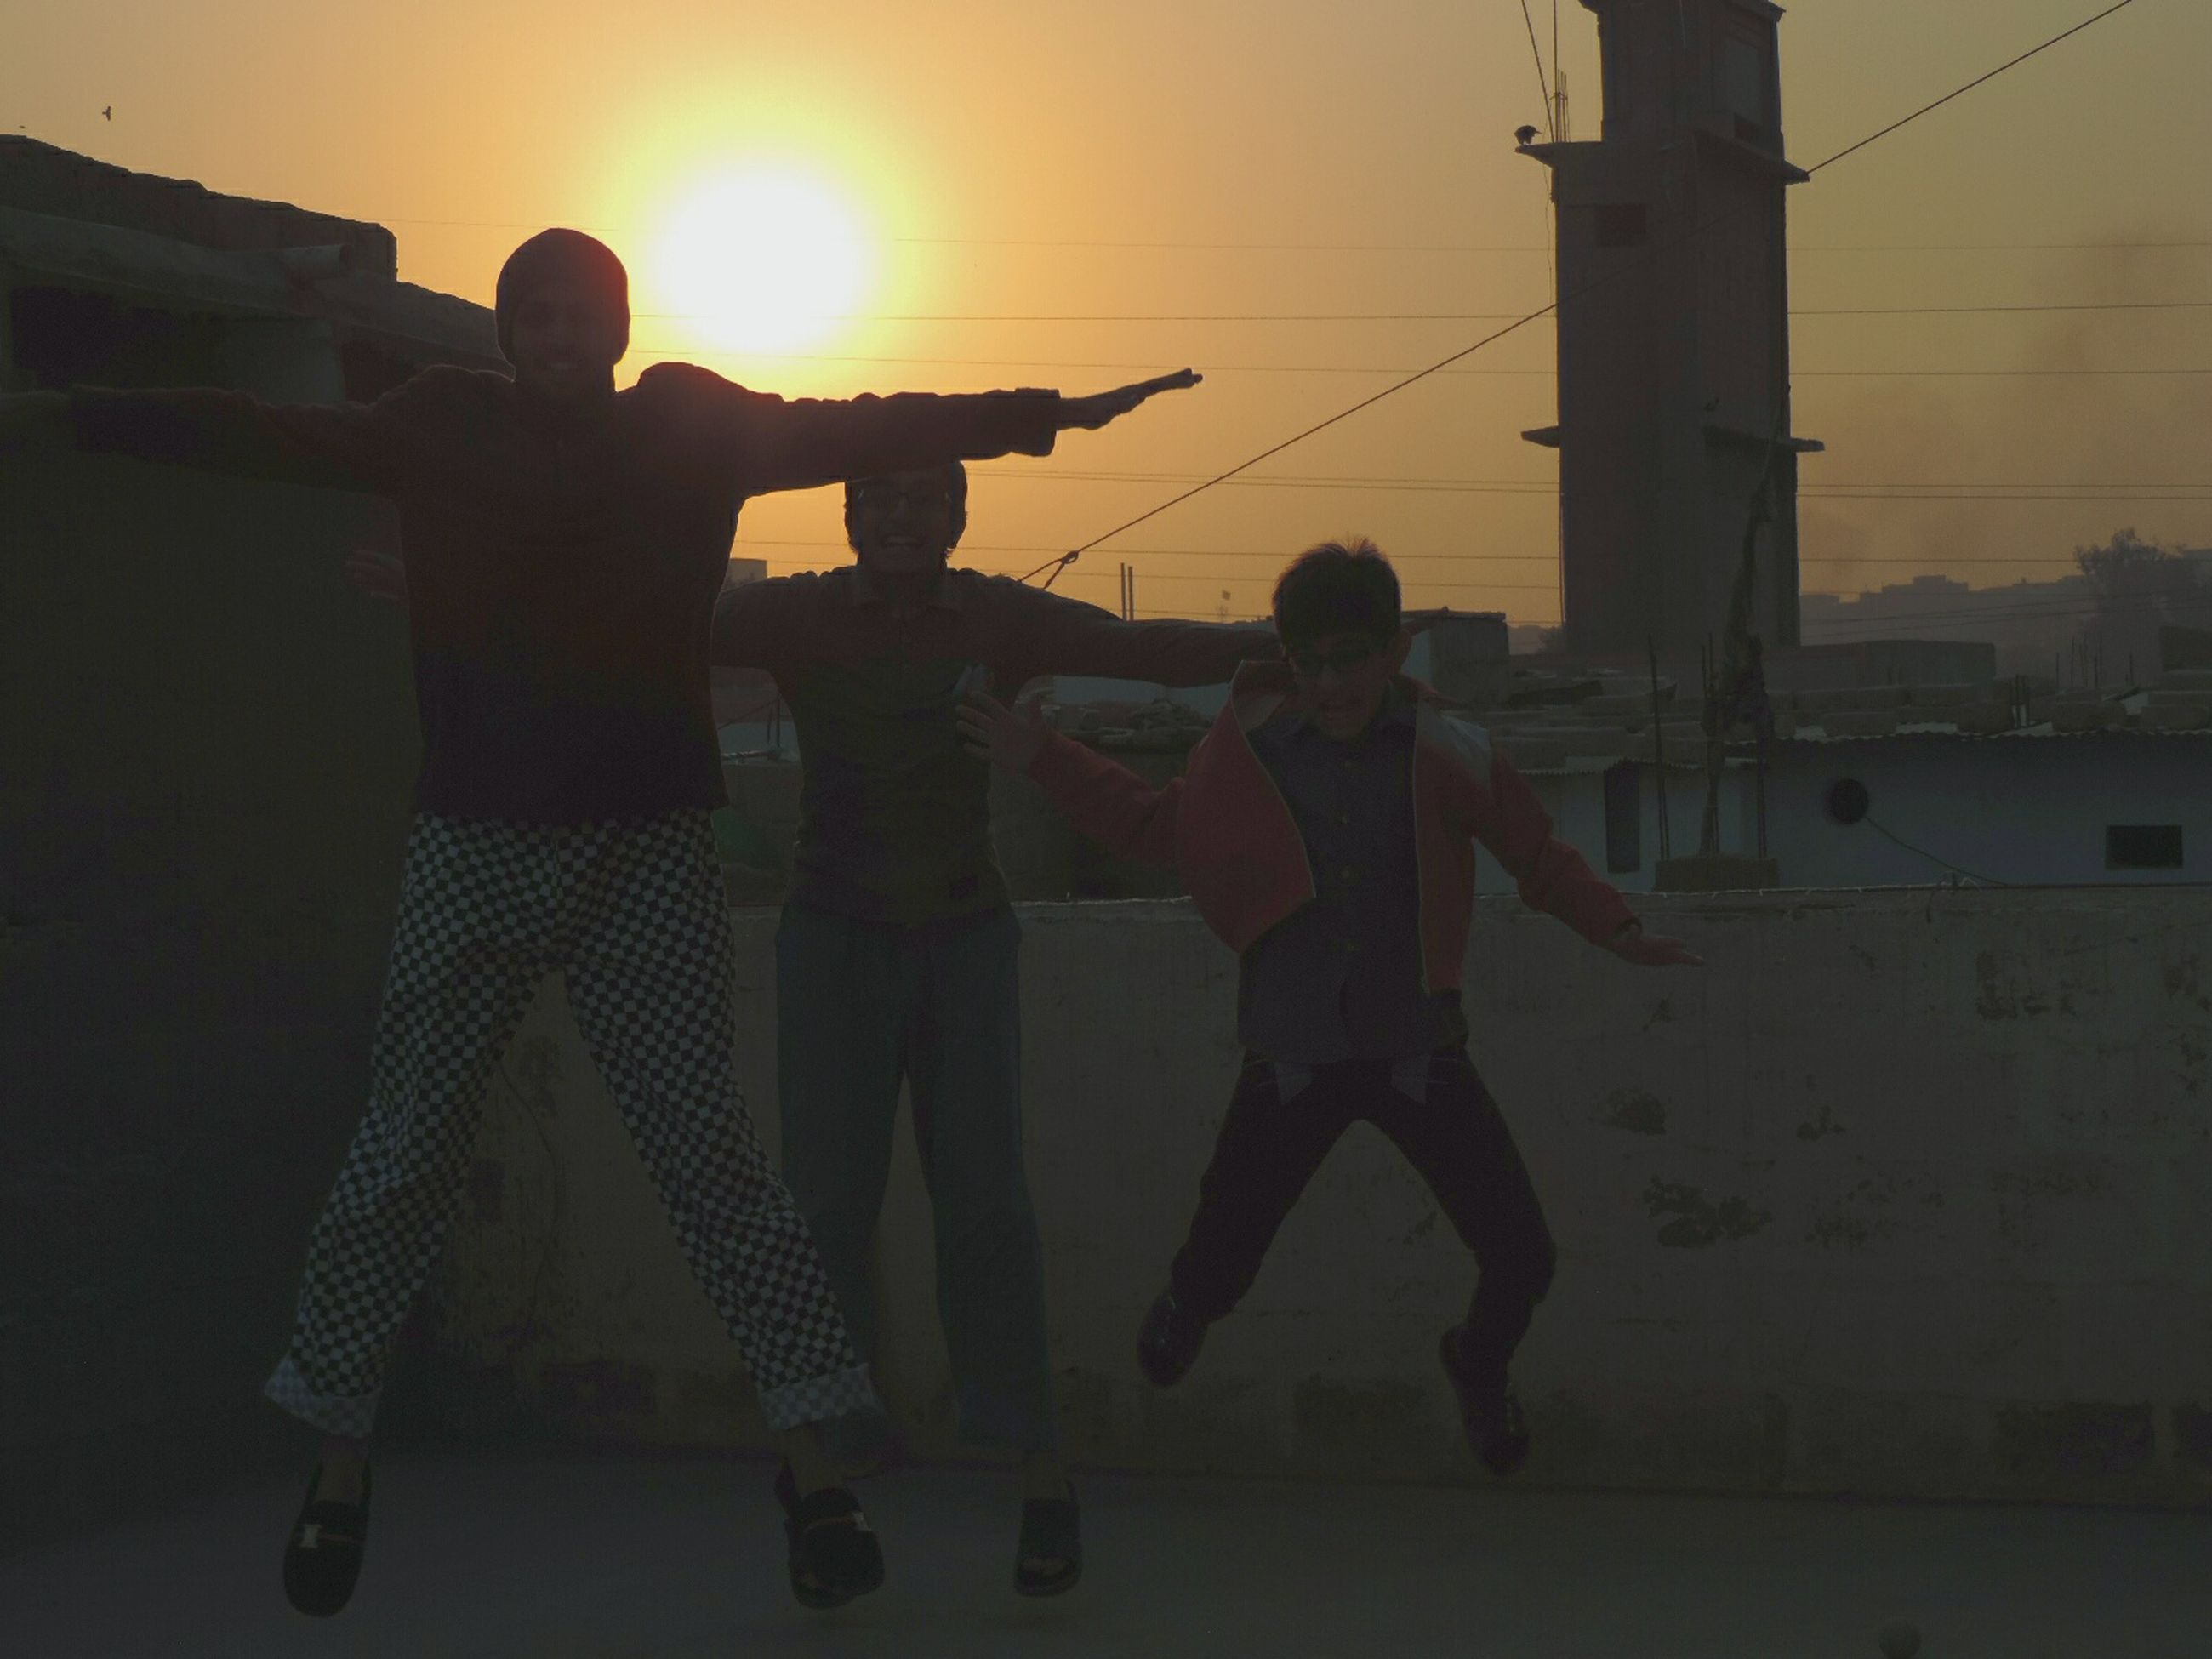 lifestyles, men, leisure activity, togetherness, bonding, silhouette, full length, sunset, person, sun, friendship, sunlight, love, standing, casual clothing, occupation